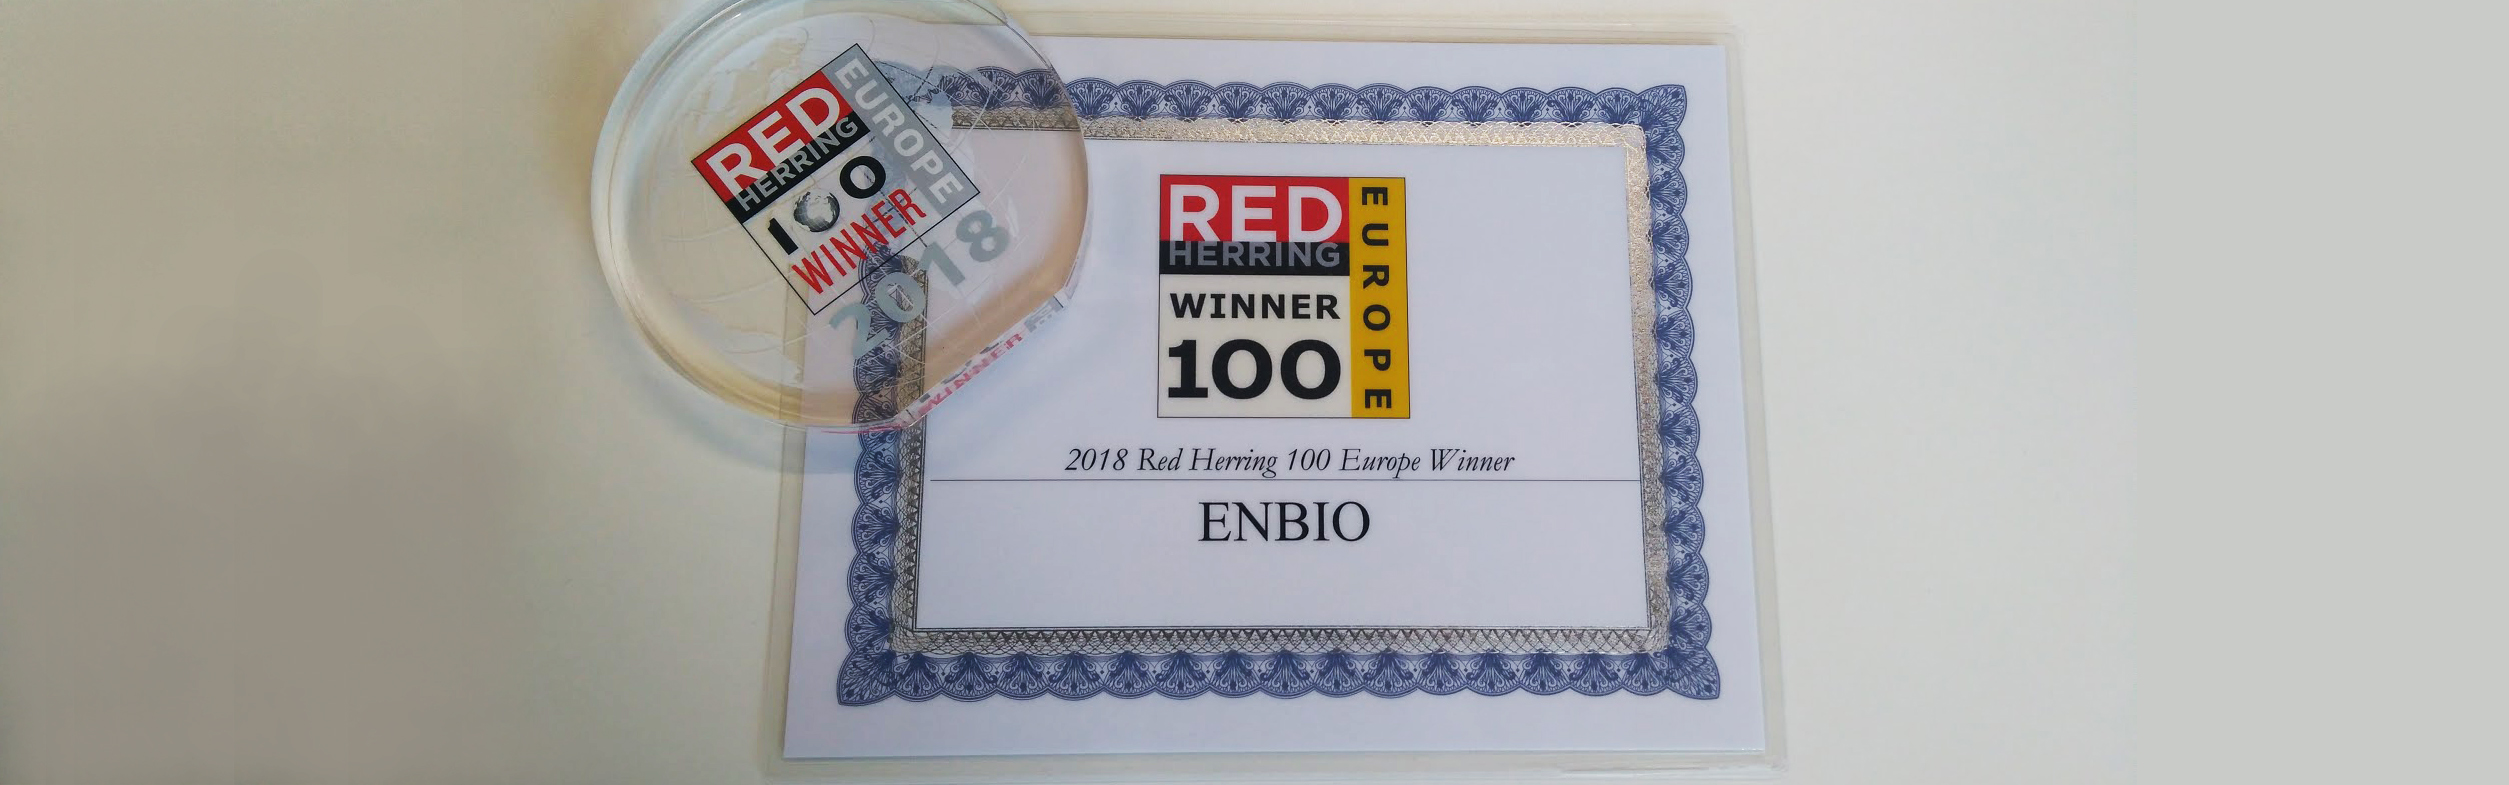 ENBIO chosen as a 2018 Red Herring Top 100 Europe Winner